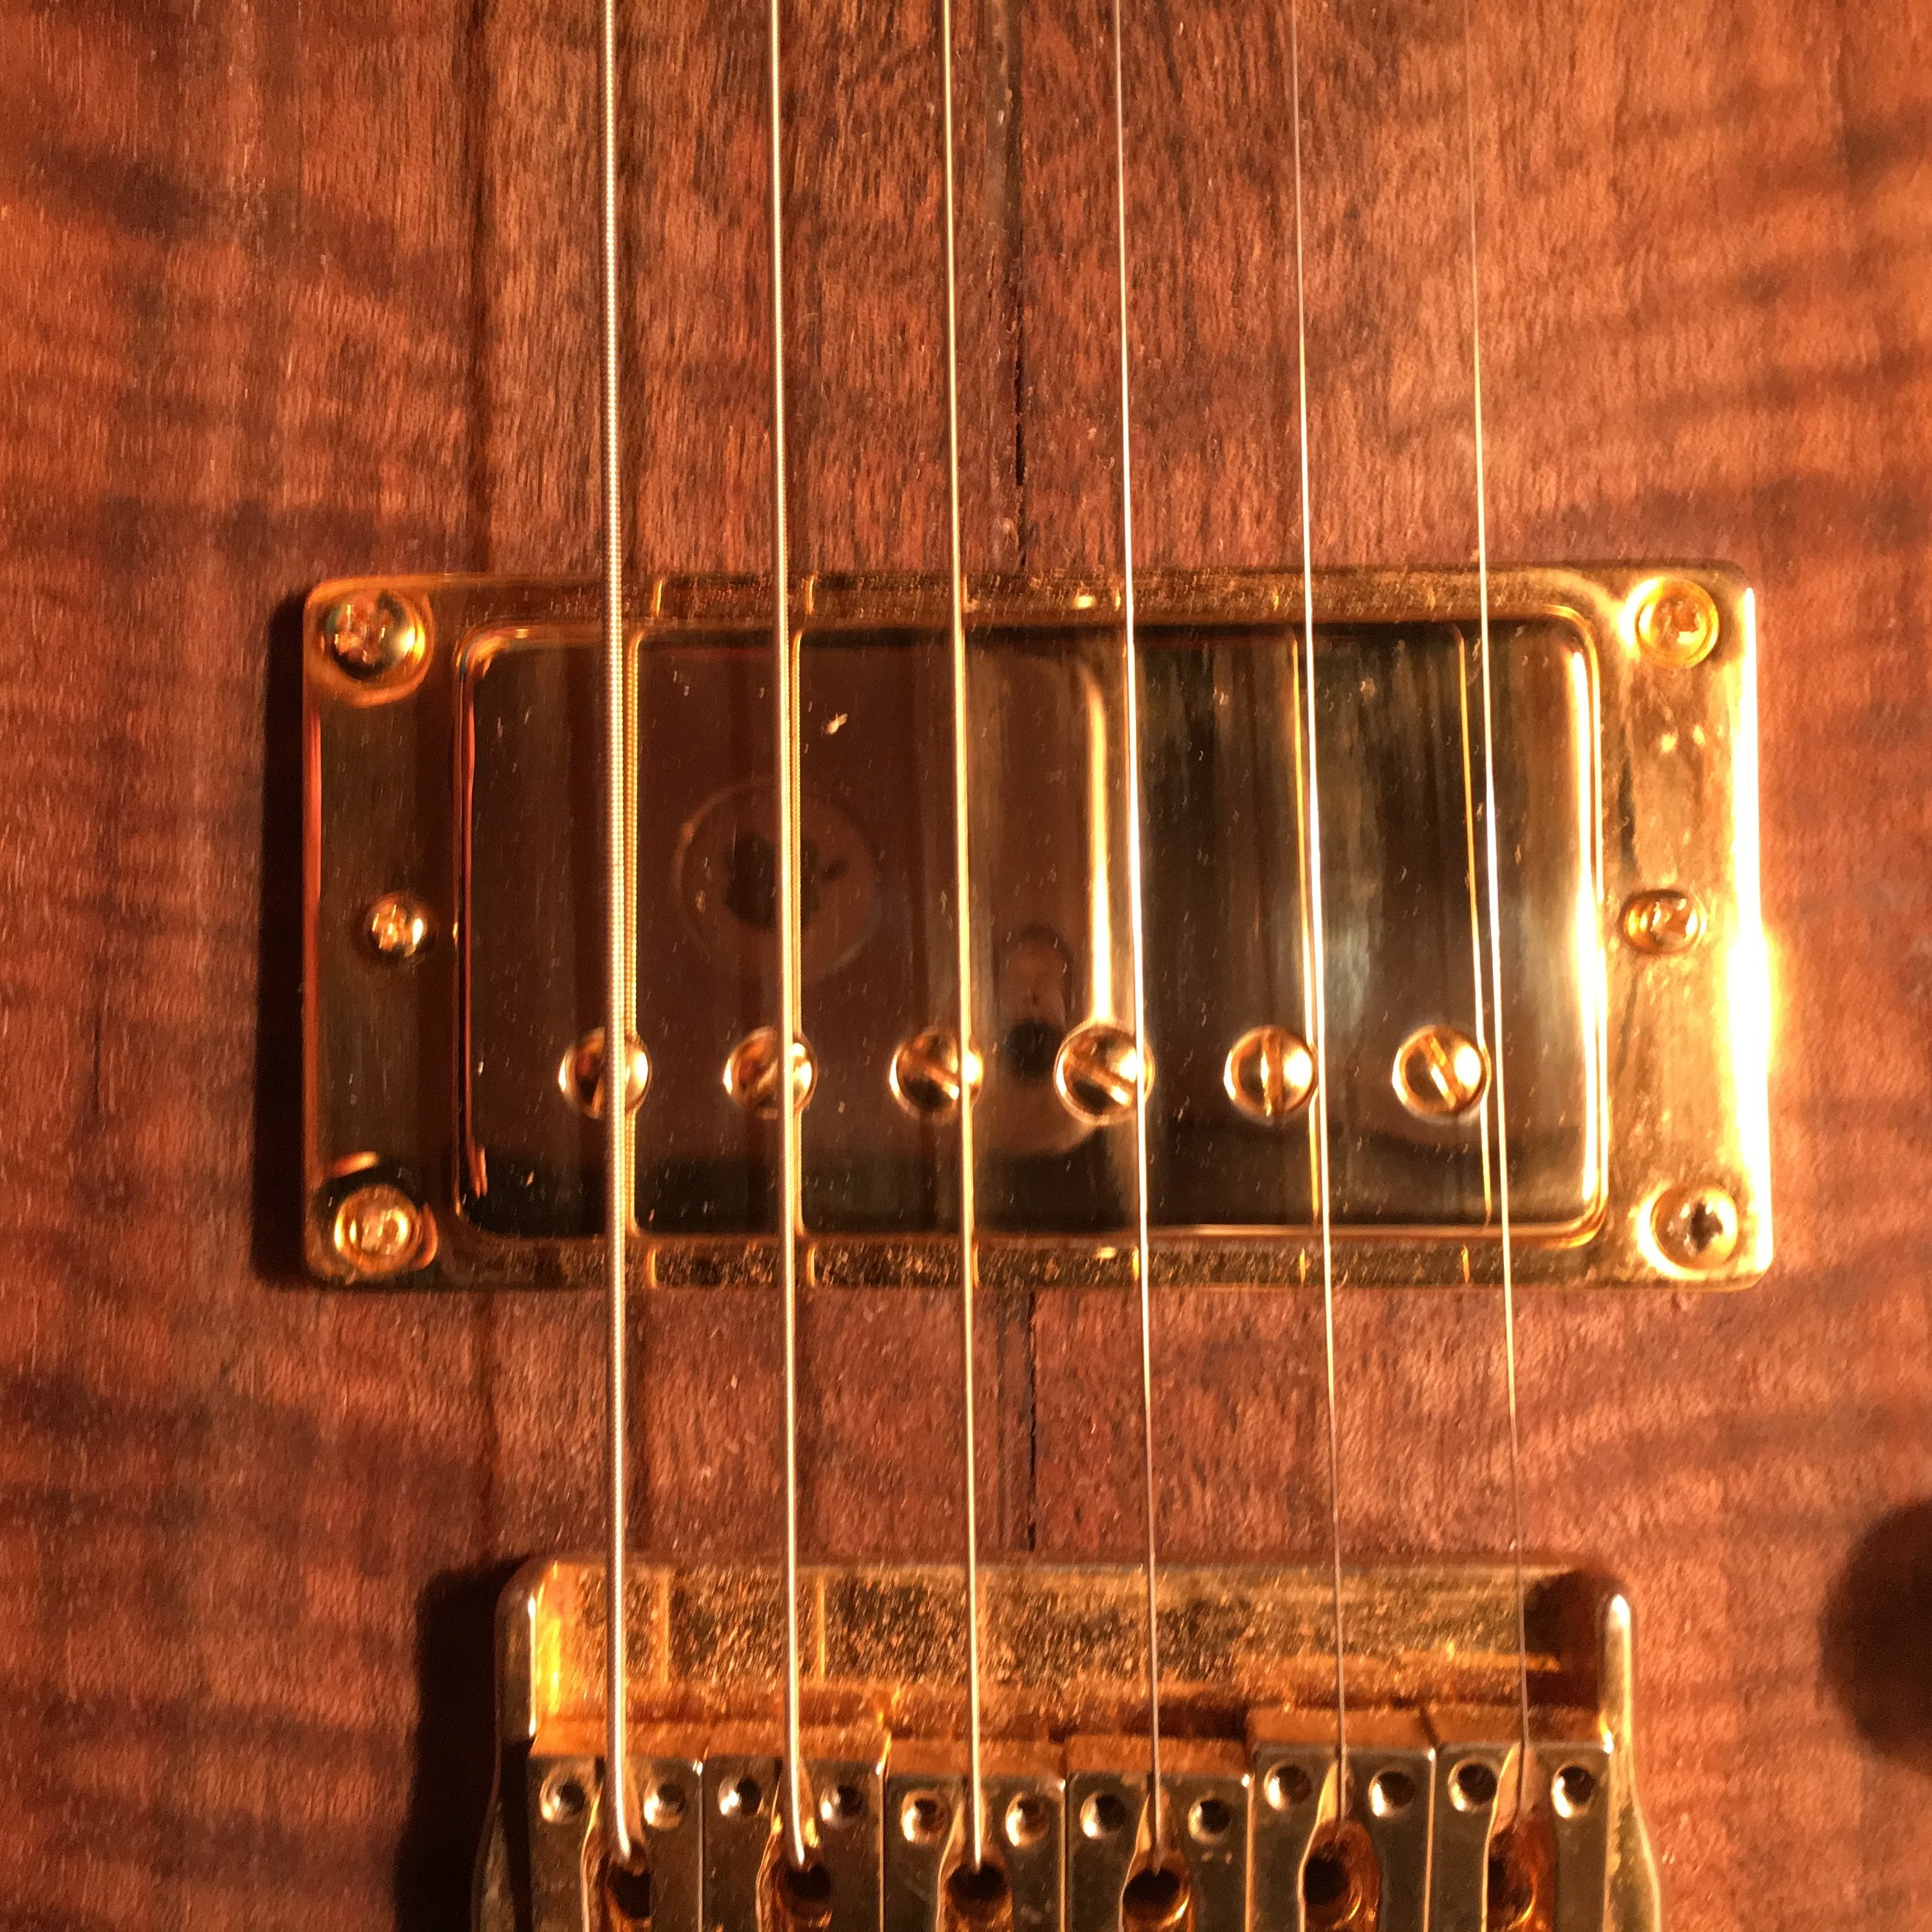 The Golden Age humbuckers are available in two or four wire configuration so they can be coil split.